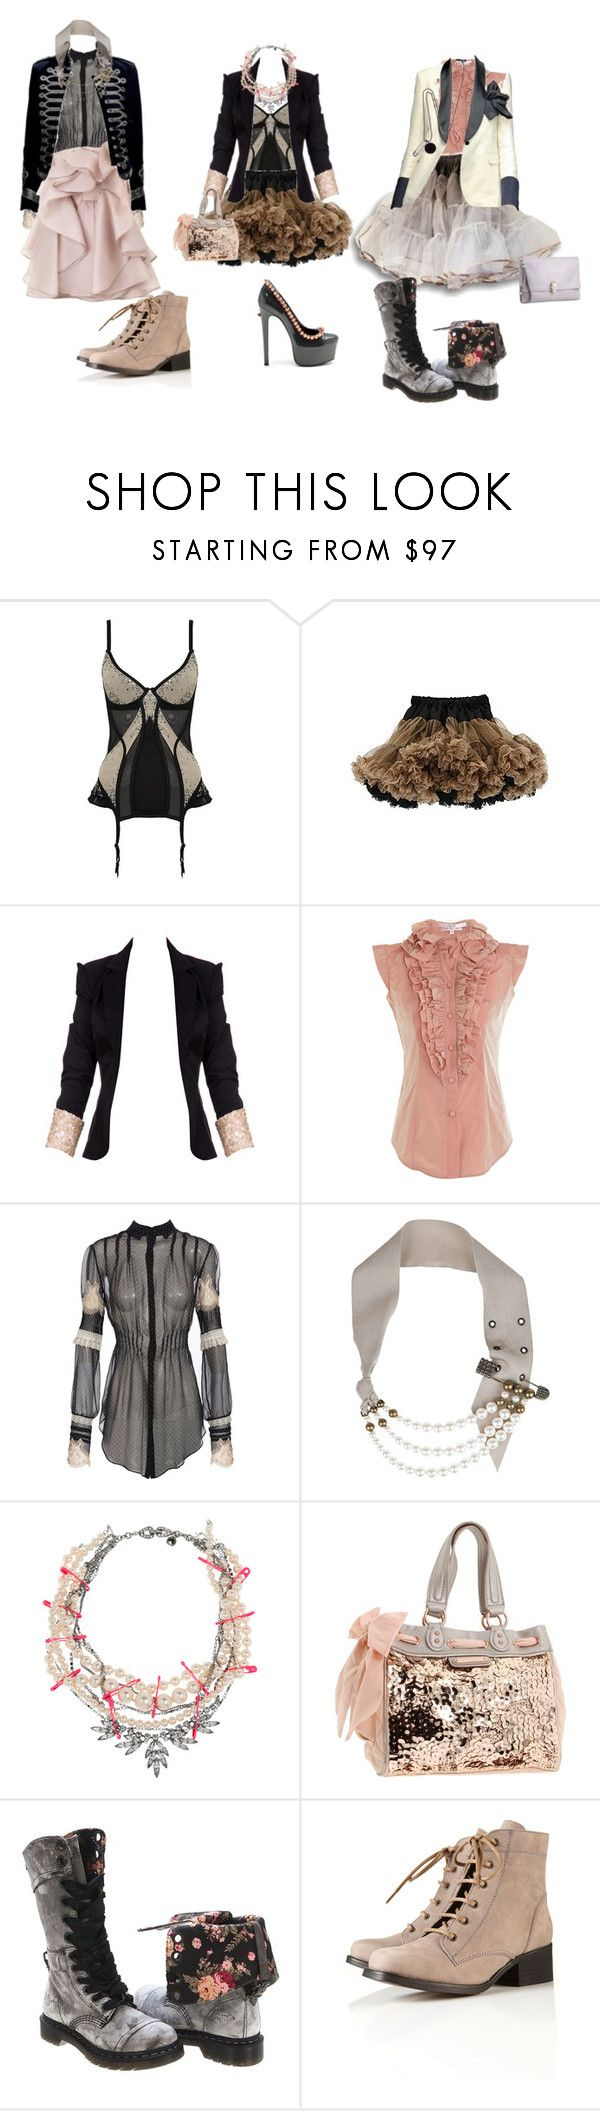 """""""Fall All Over Yourself"""" by verysmallgoddess ❤ liked on Polyvore featuring Lascivious, Kaiya Eve, Freya, L'Wren Scott, United Bamboo, Meadham Kirchhoff, Valentino, ADAM, Lanvin and Tom Binns"""